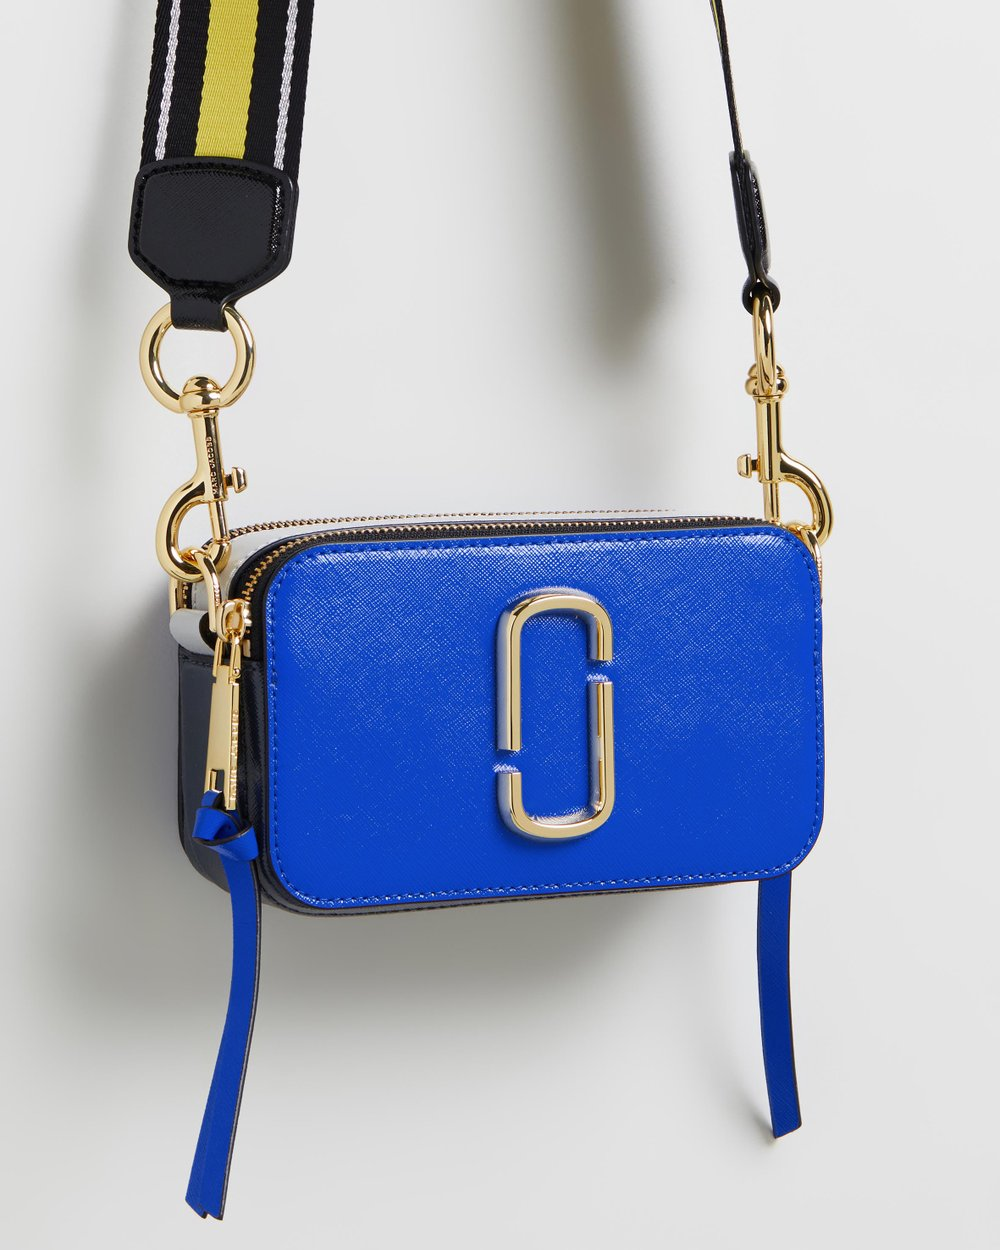 367972e8cfe0 Snapshot Small Camera Bag by Marc Jacobs Online